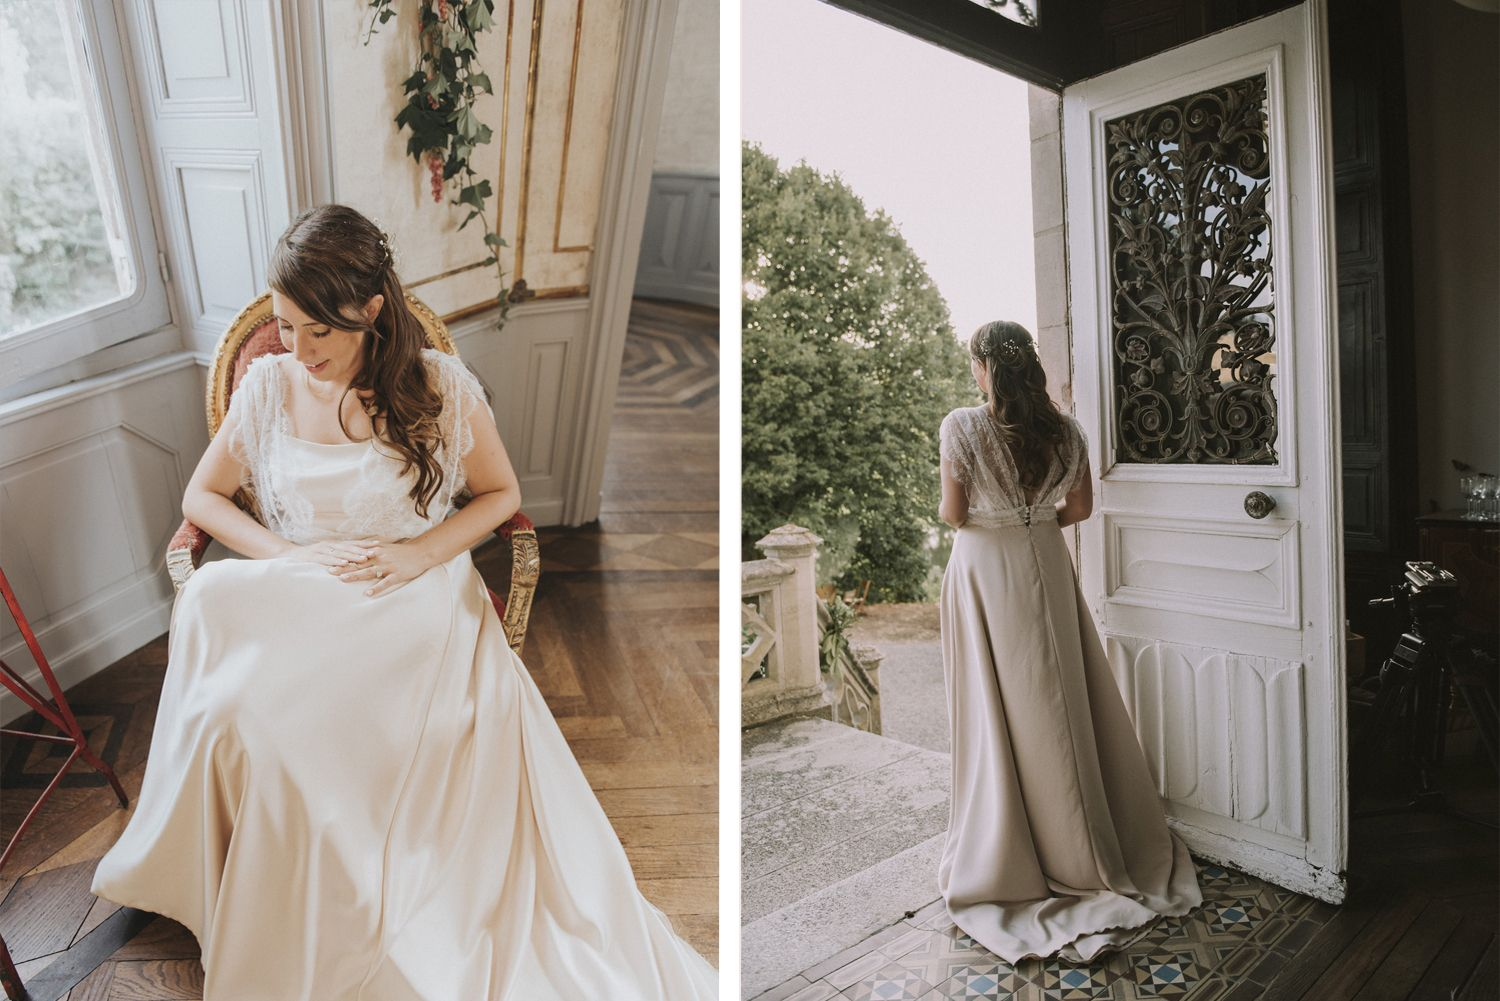 Escape To The Chateau Vintage Wedding In The Chateau De La Motte Husson In 2020 Vintage Wedding Wedding Wedding Dresses Lace